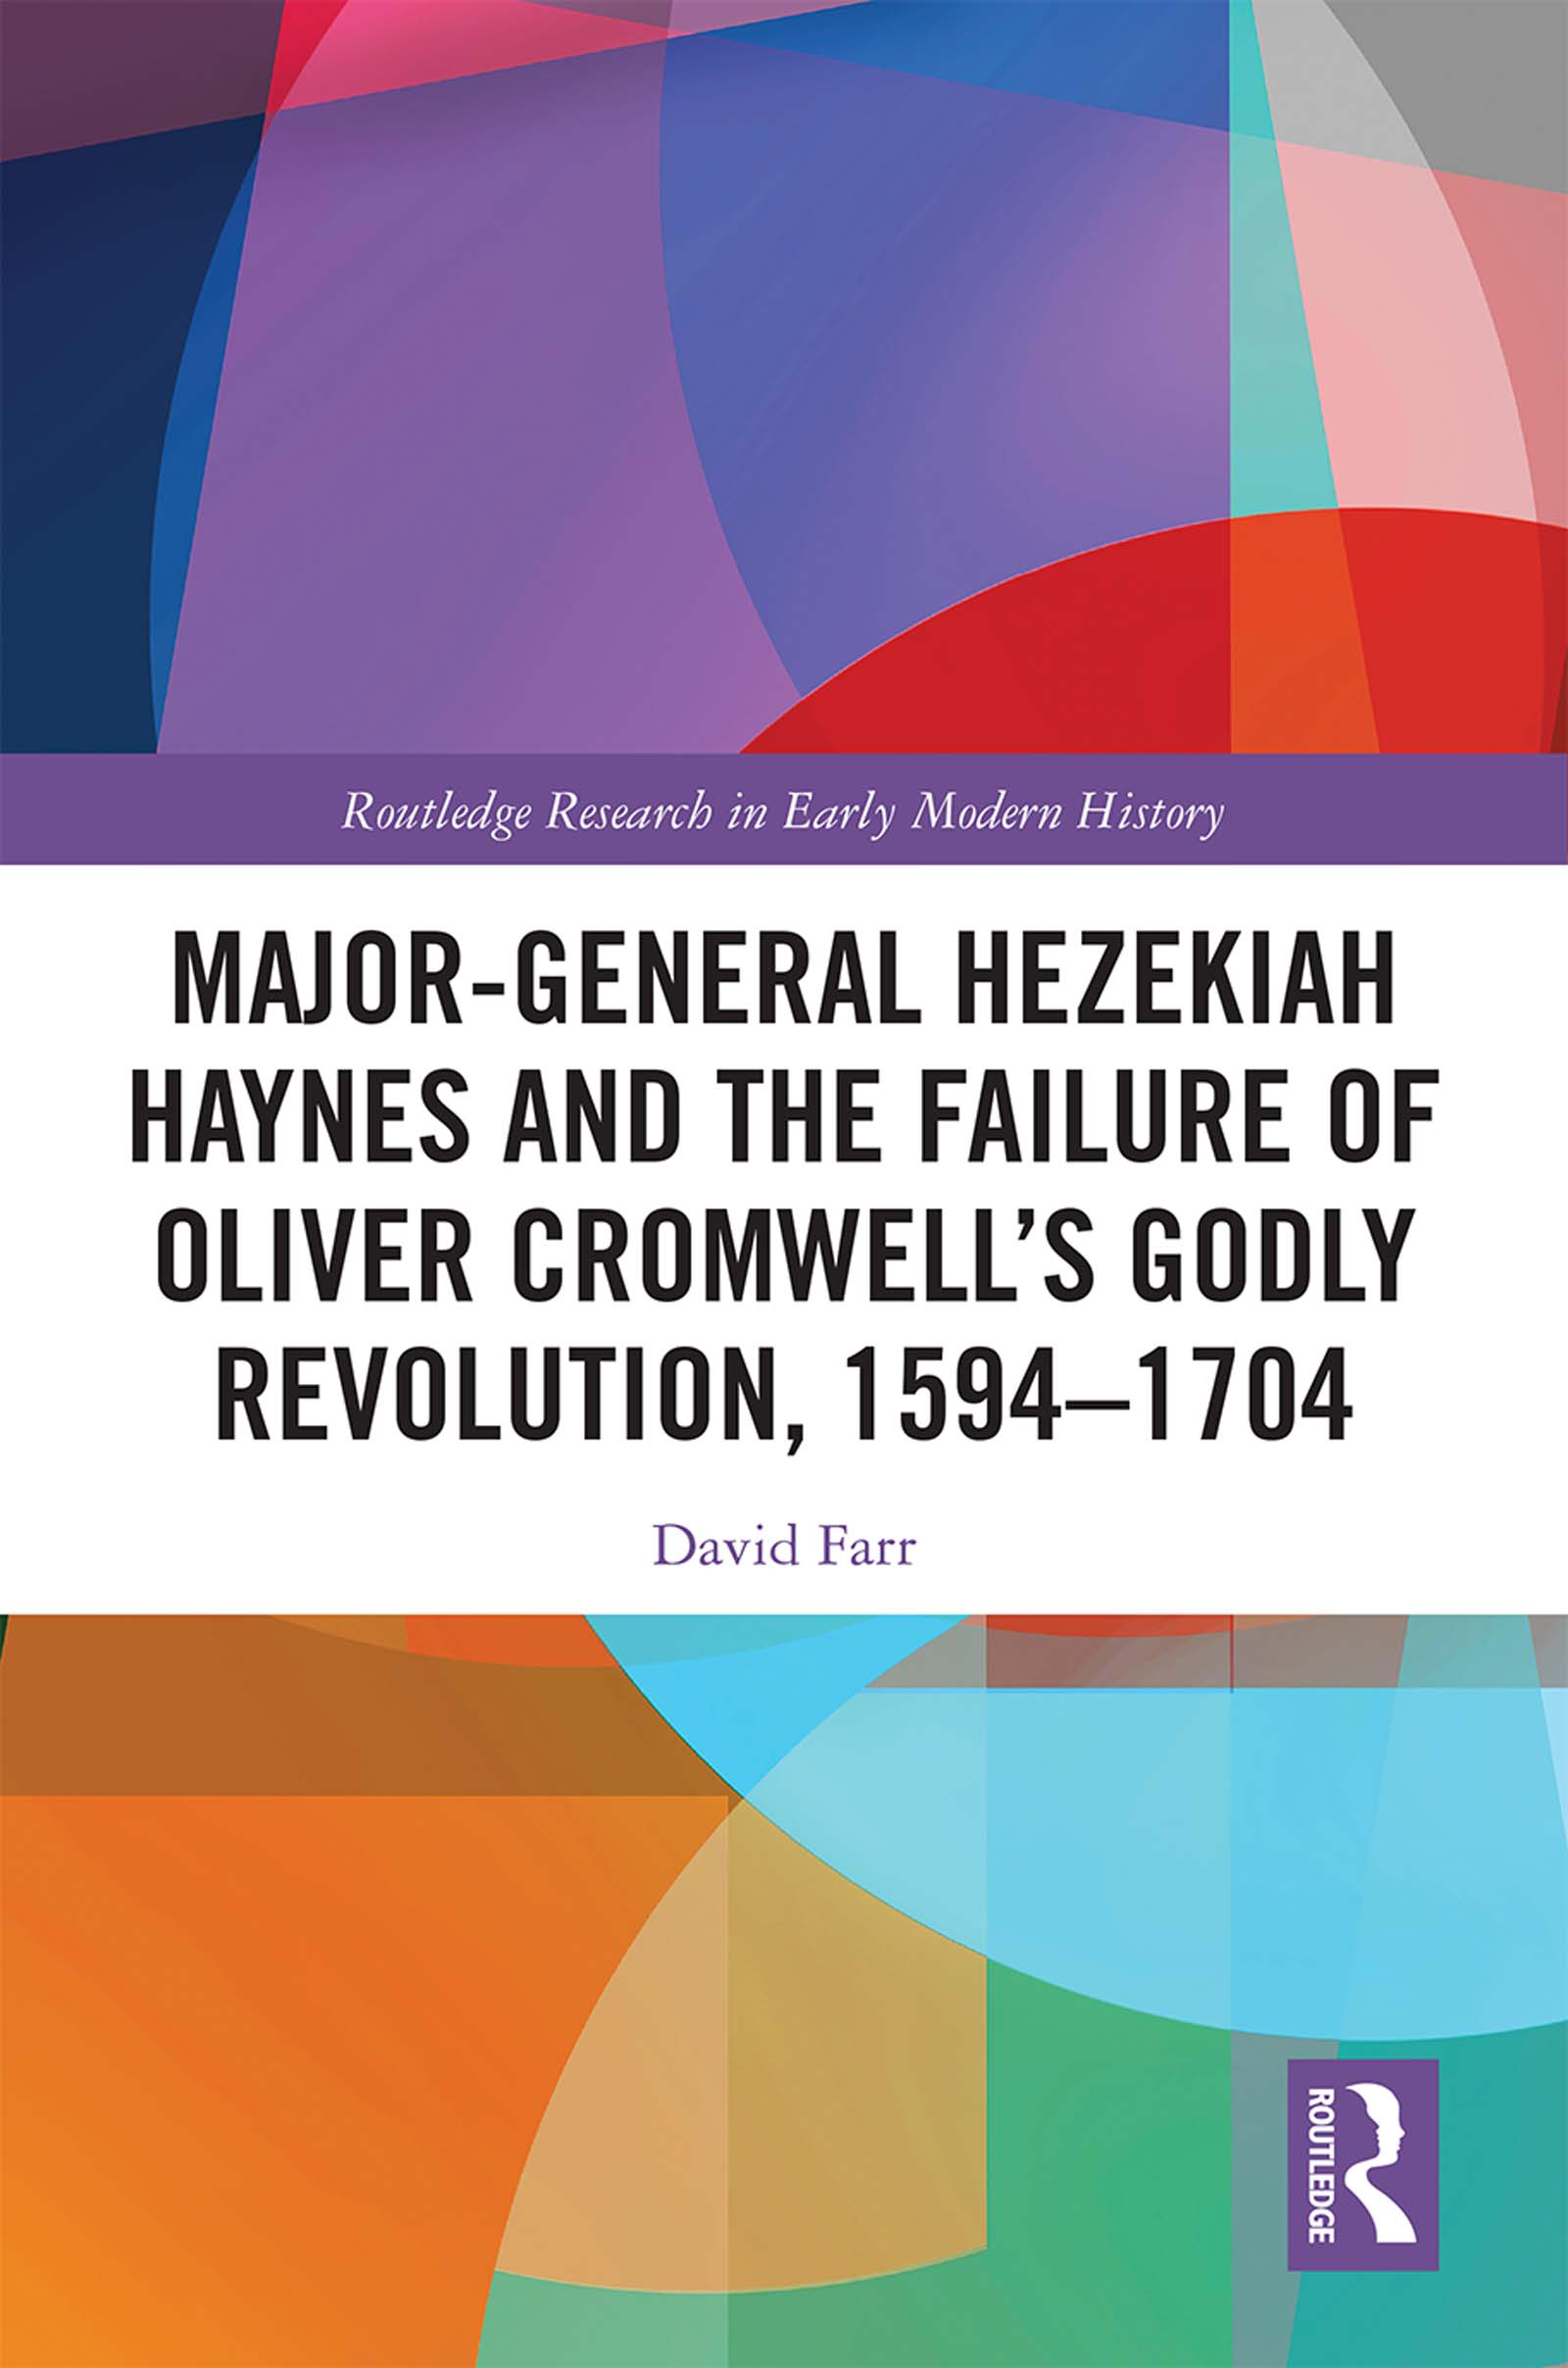 The Economic, Kinship and Religious Networks of Hezekiah Haynes and the Development of a Puritan Activist, 1594 to 1642